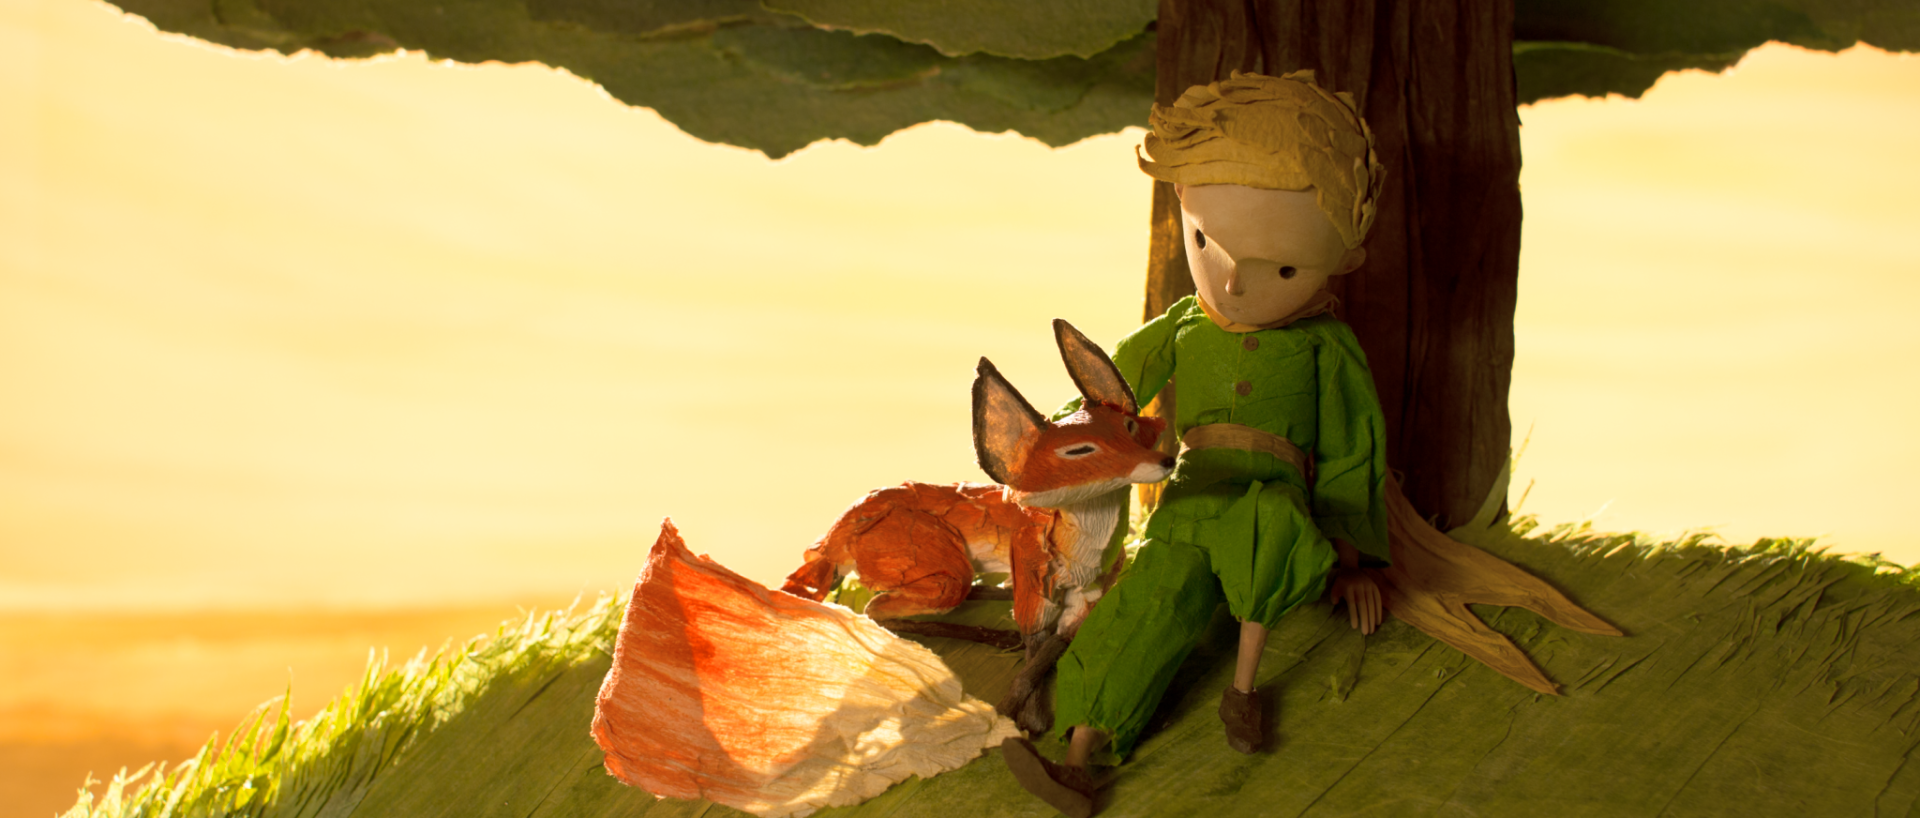 the little prince pdf download